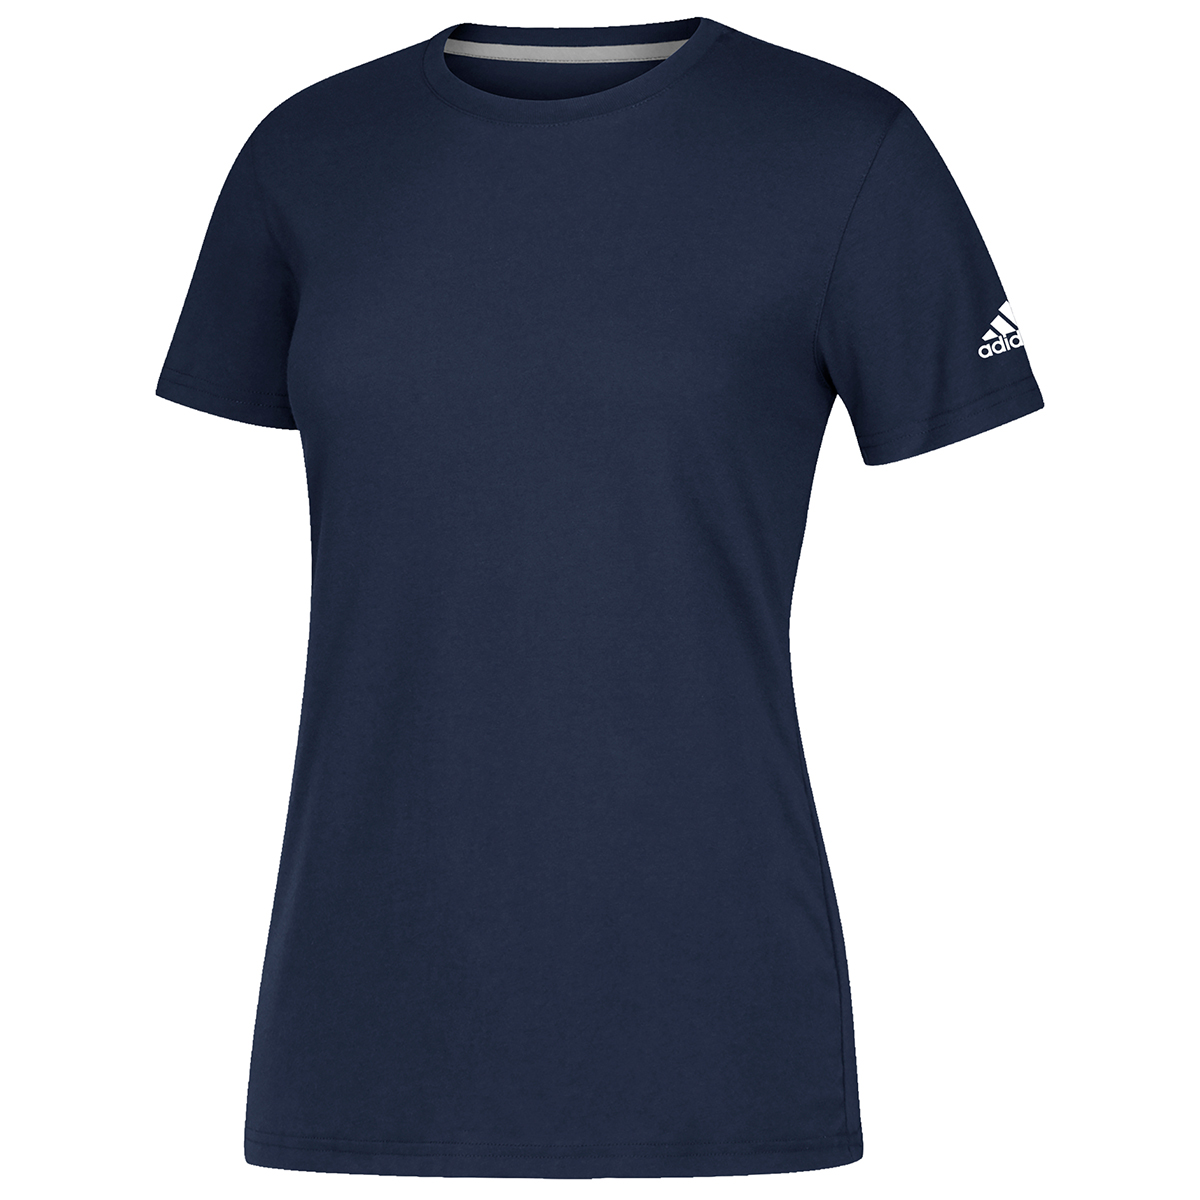 Adidas Women's Short-Sleeve Performance Crew Neck Tee - Blue, 3XL